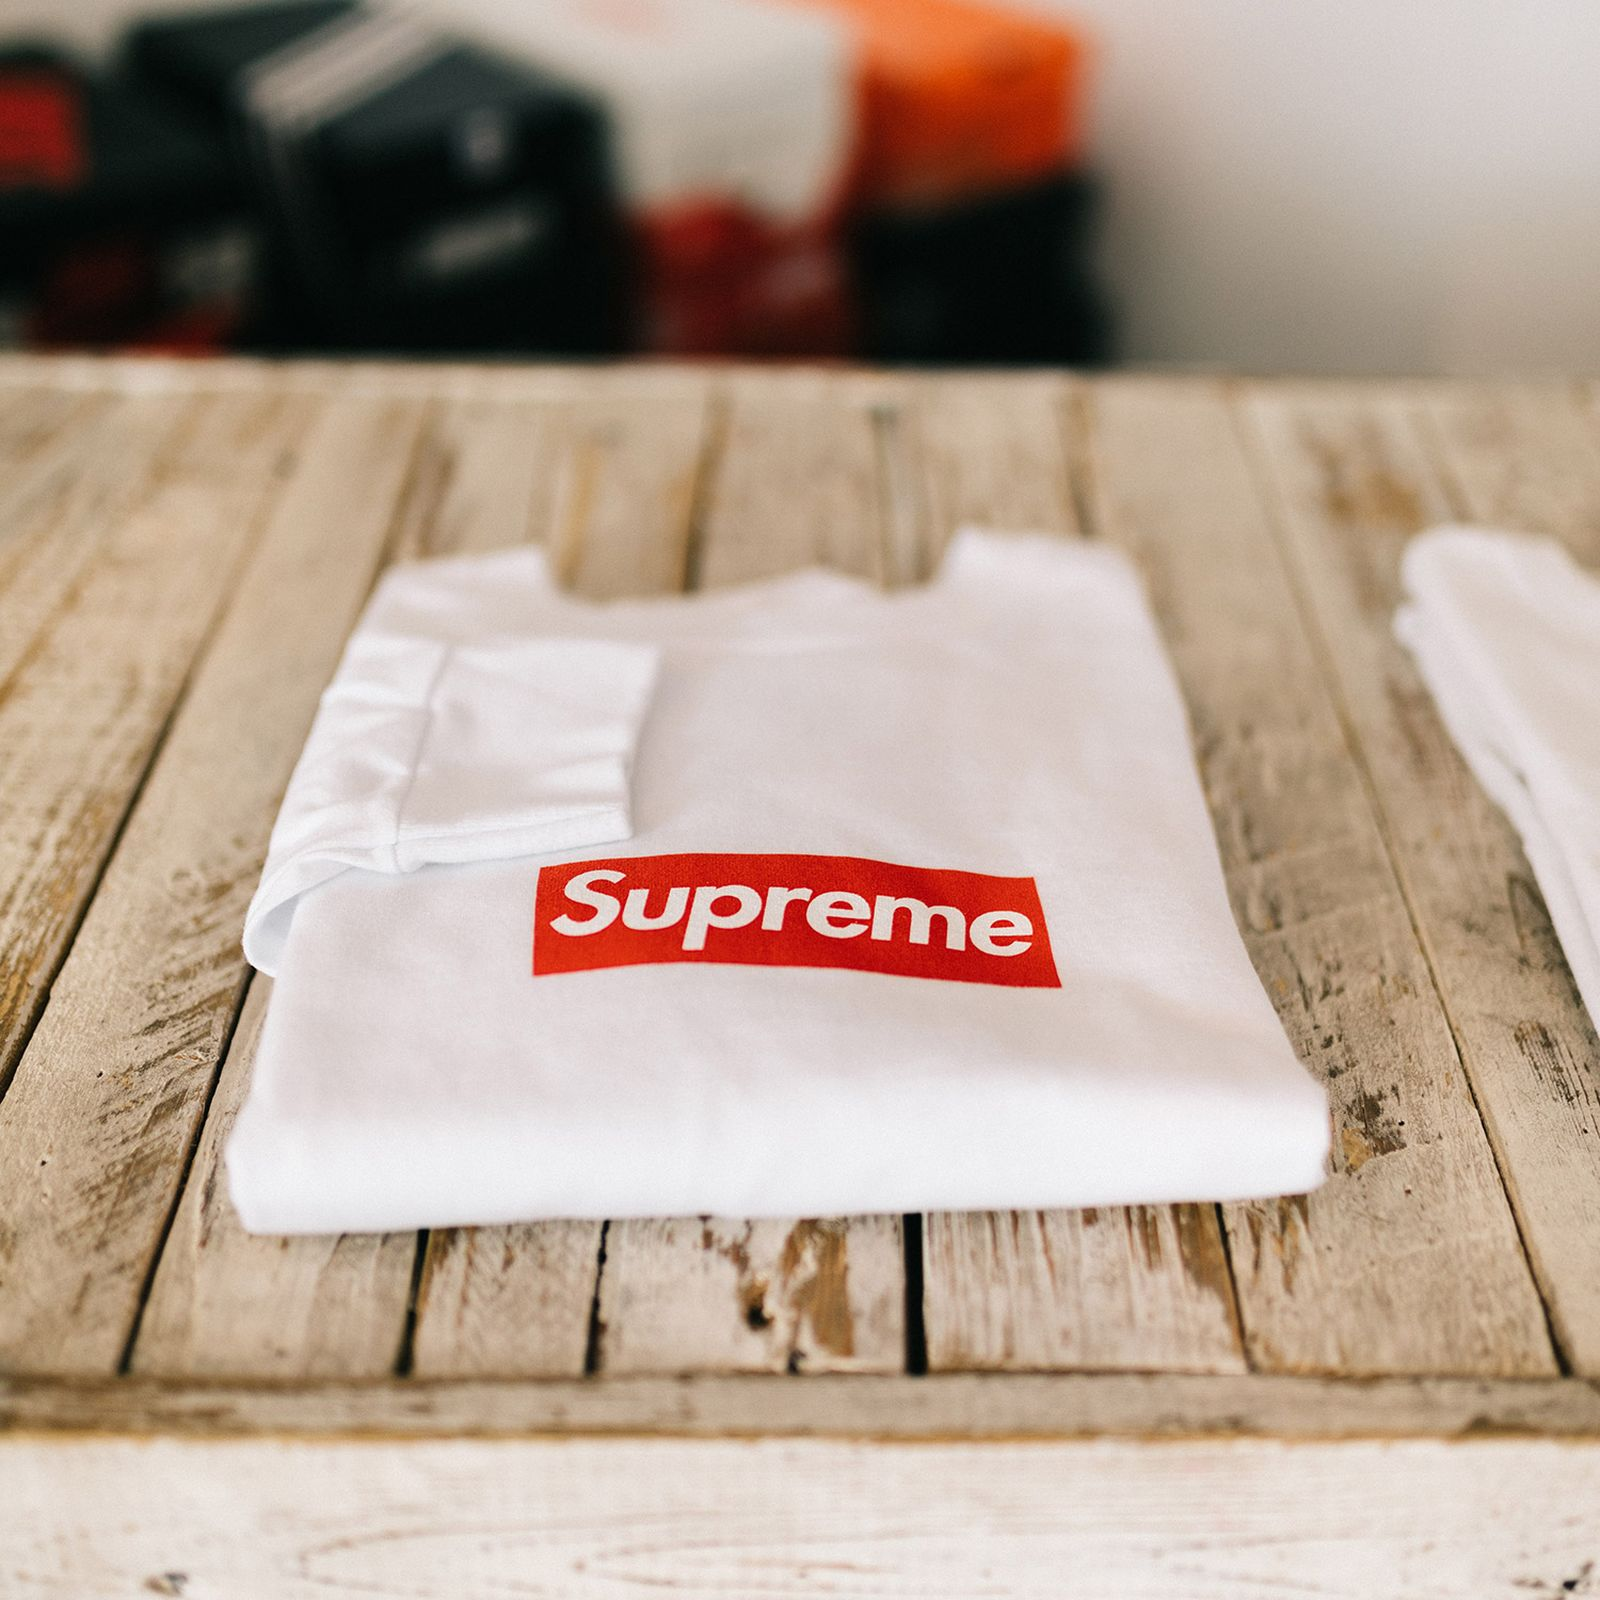 sizerun-supreme-reseller-new-england-02